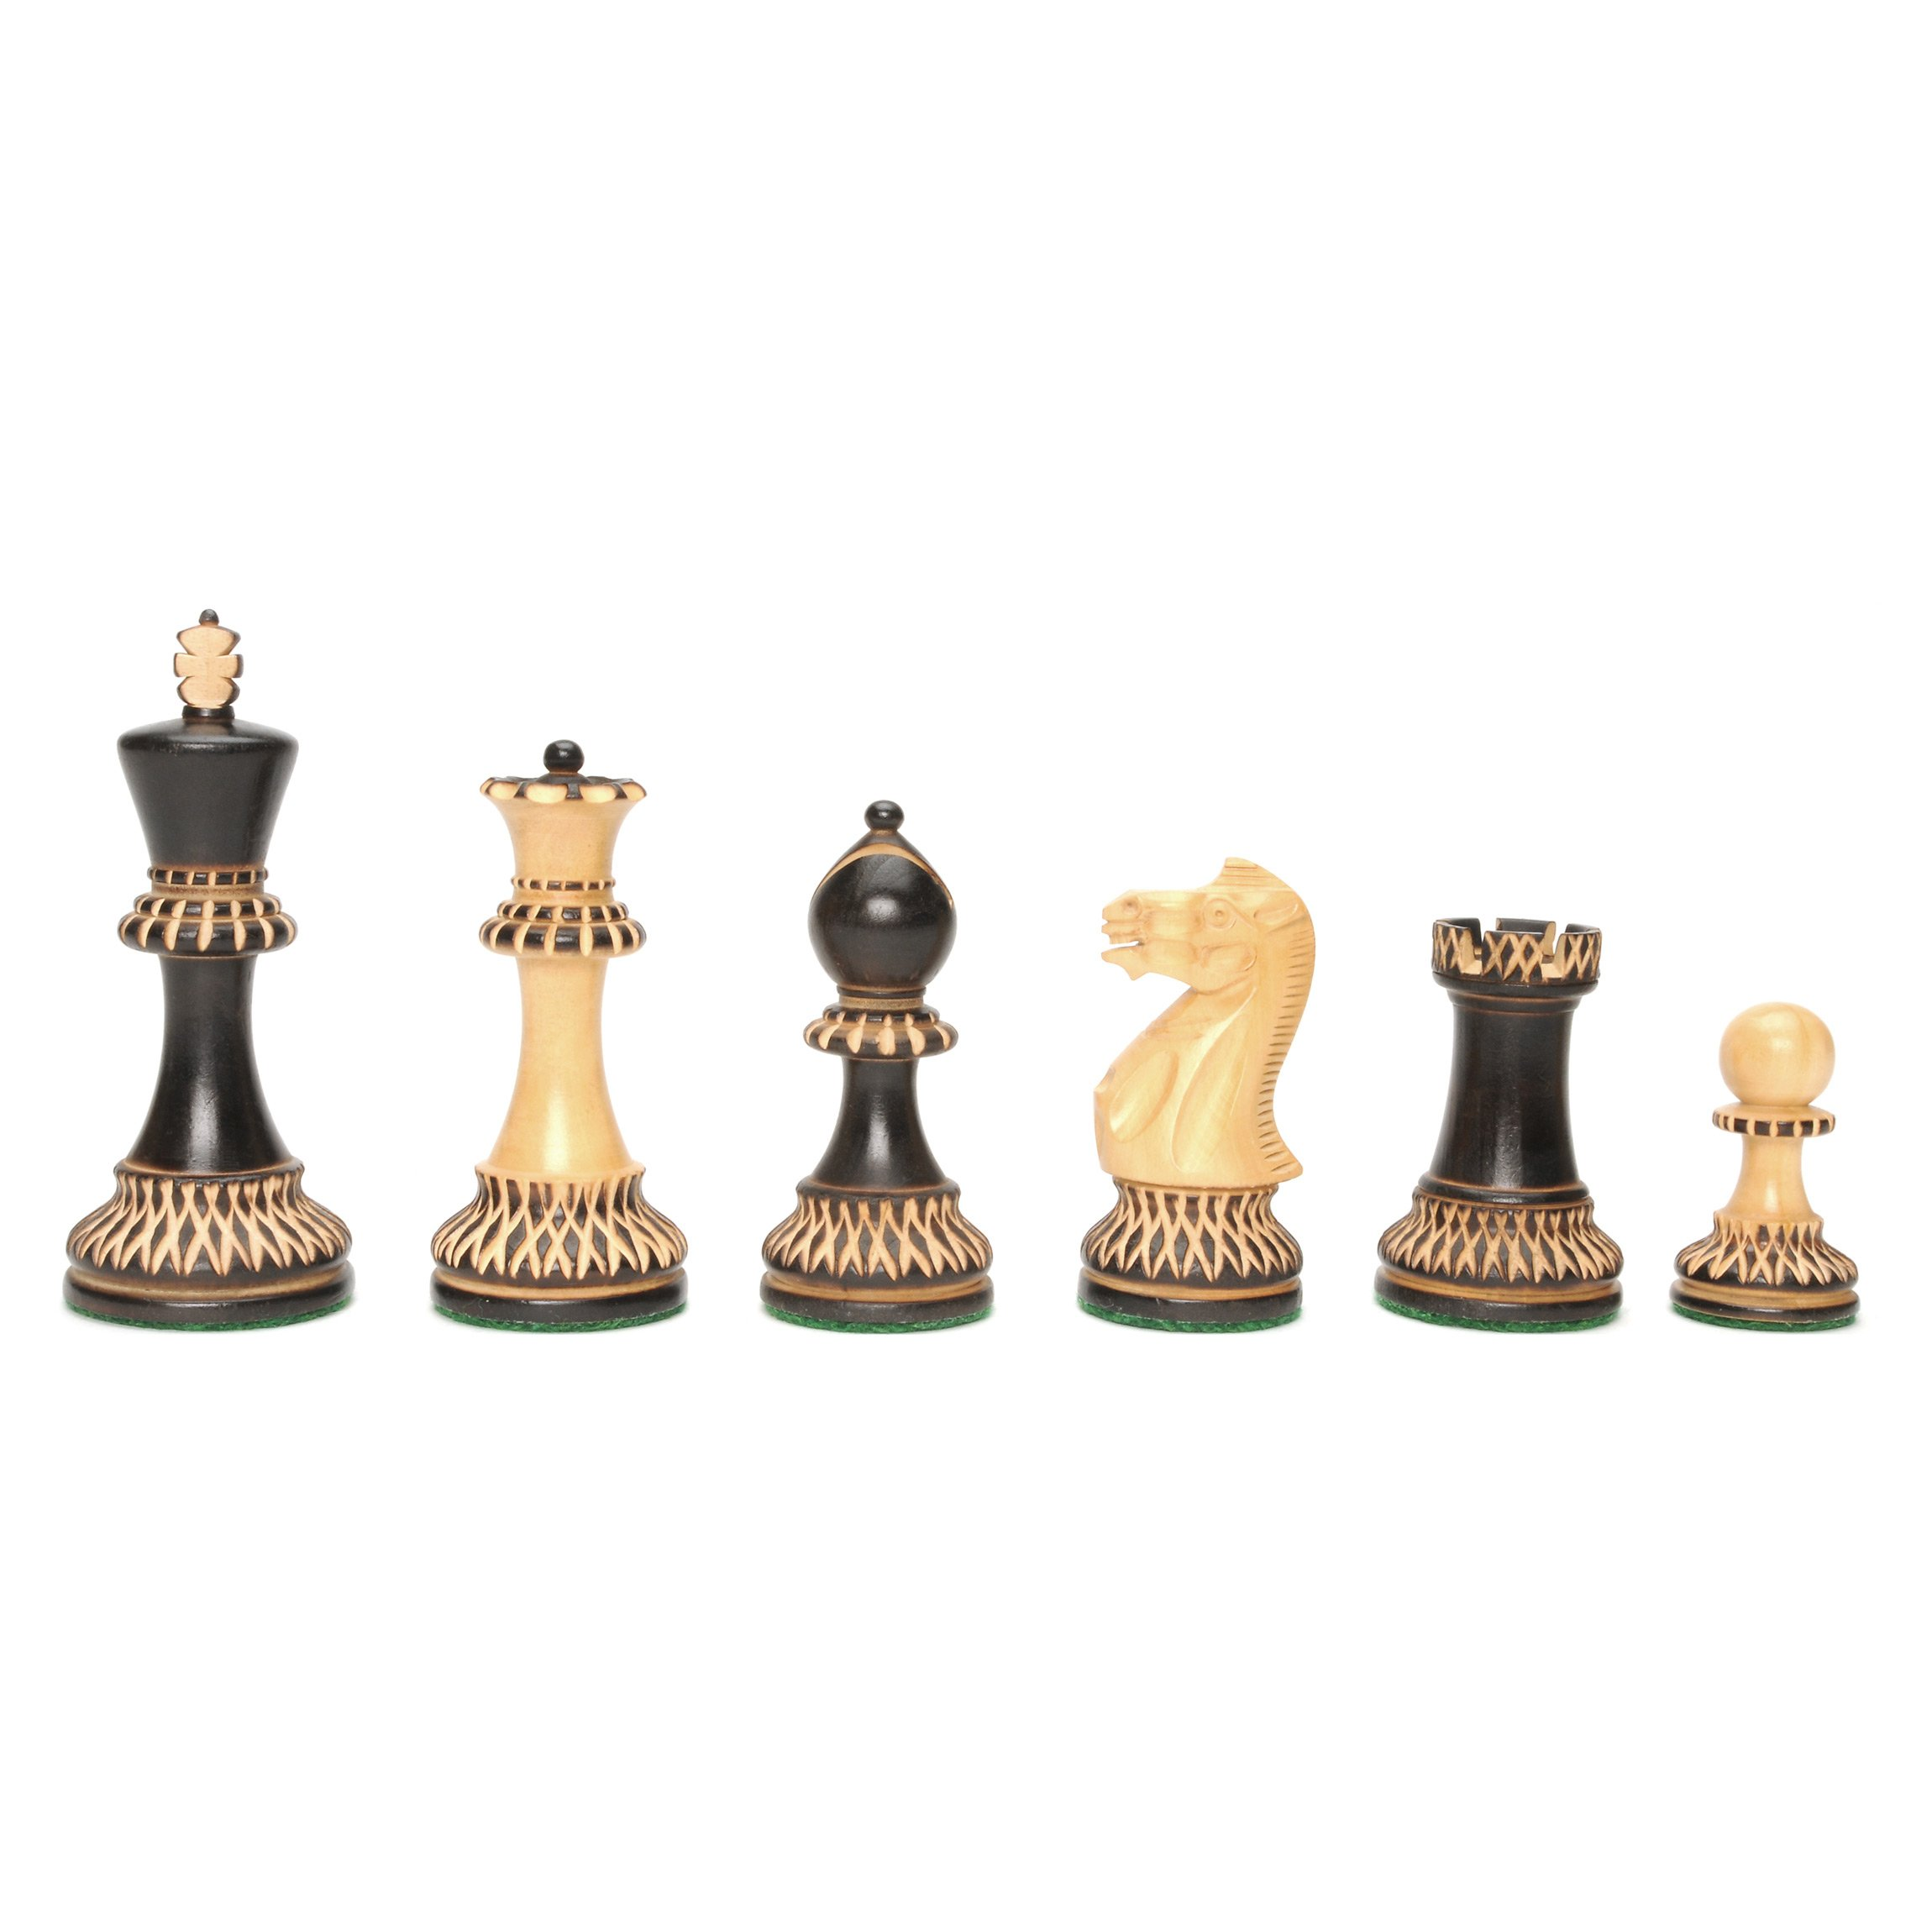 Staunton Chessmen with Ornate Pyrography Design - Weighted with 3.94 Inch King, 2 extra queens